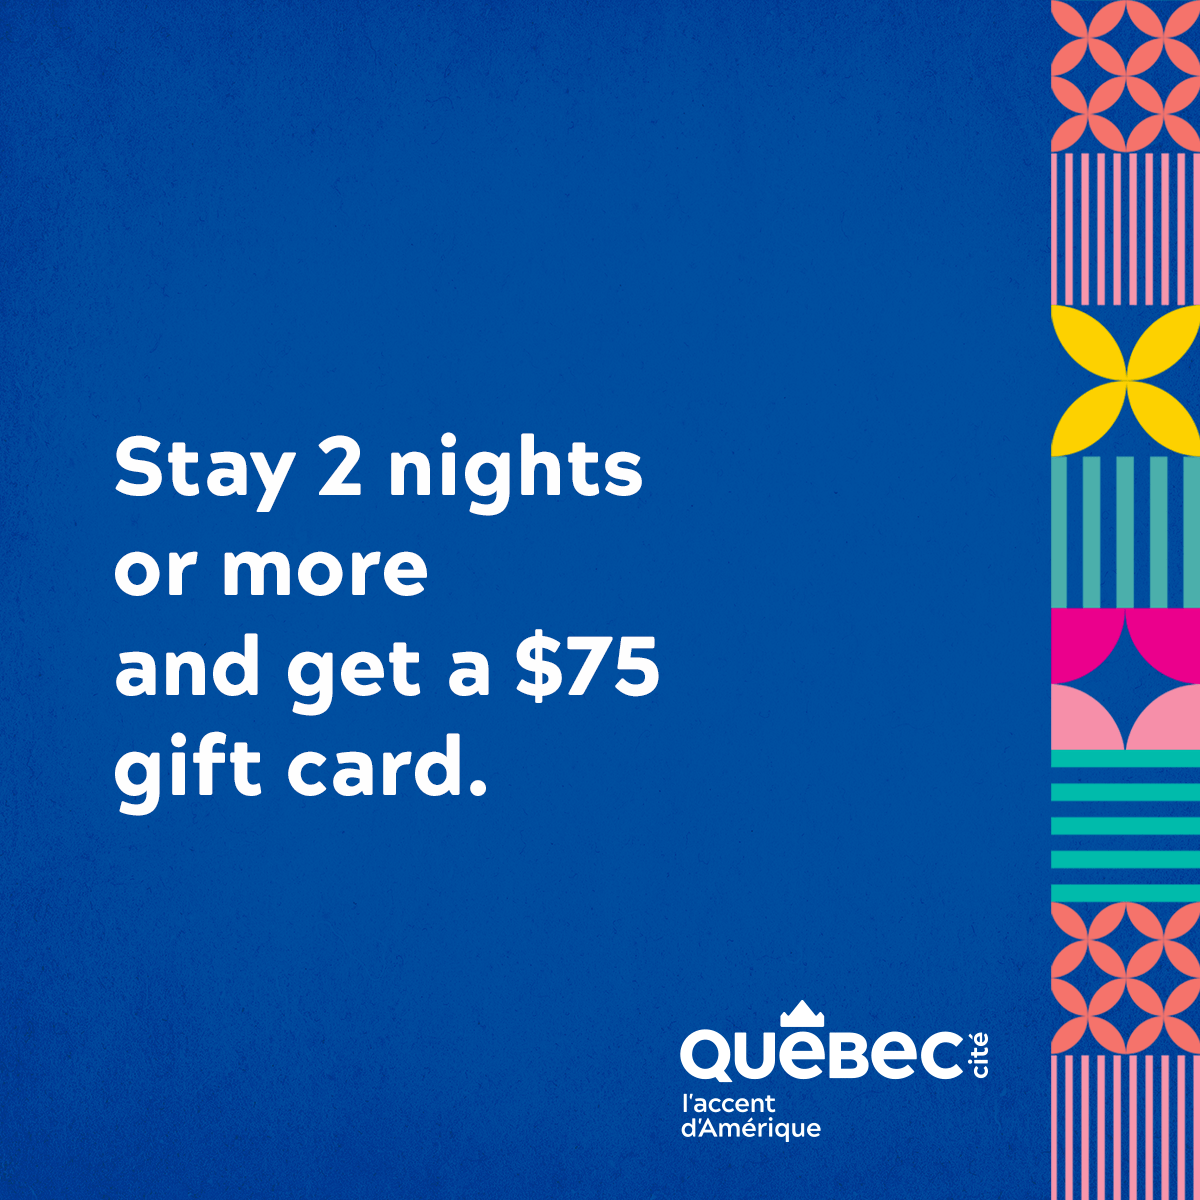 receive a $75 gift card